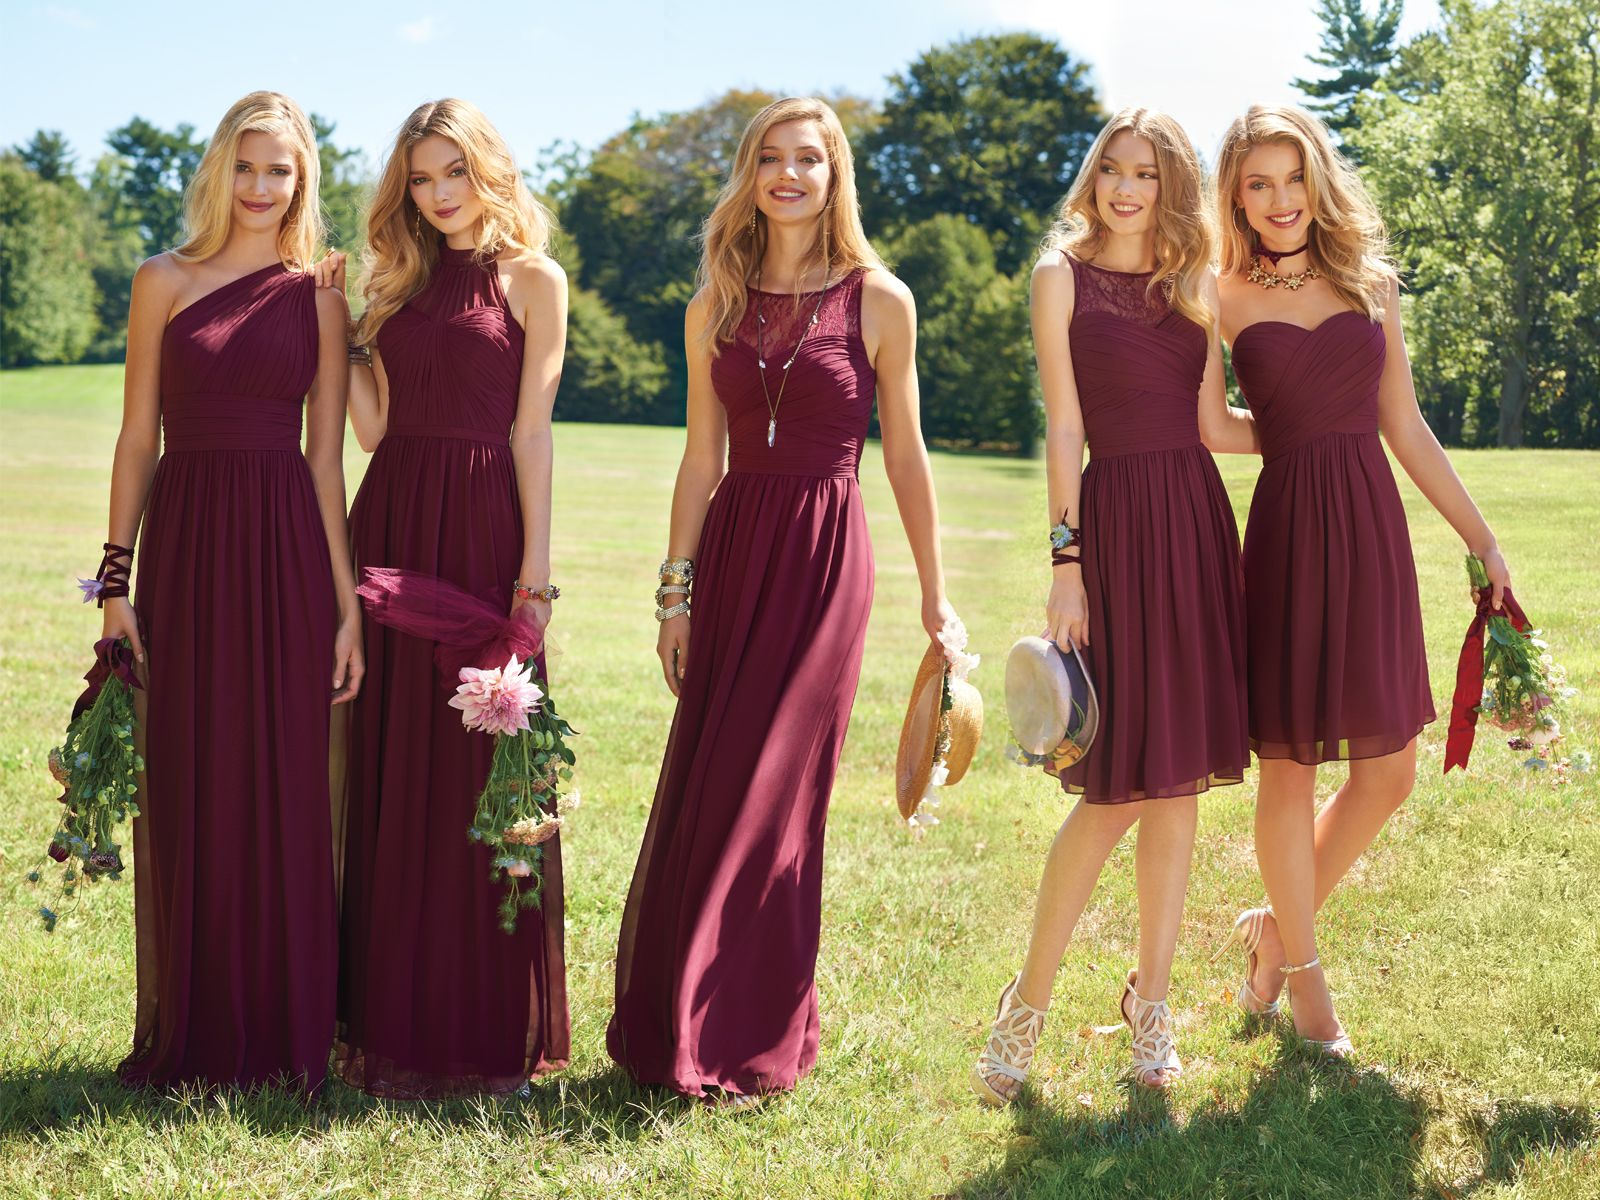 cf7f48f55bf 2018 New A Line Bridesmaid Dresses Burgundy Long Cheap Chiffon One Shoulder  Ruched Halter Floor Length Maid Of Honor Gown Summer Boho Gold Bridesmaids  ...